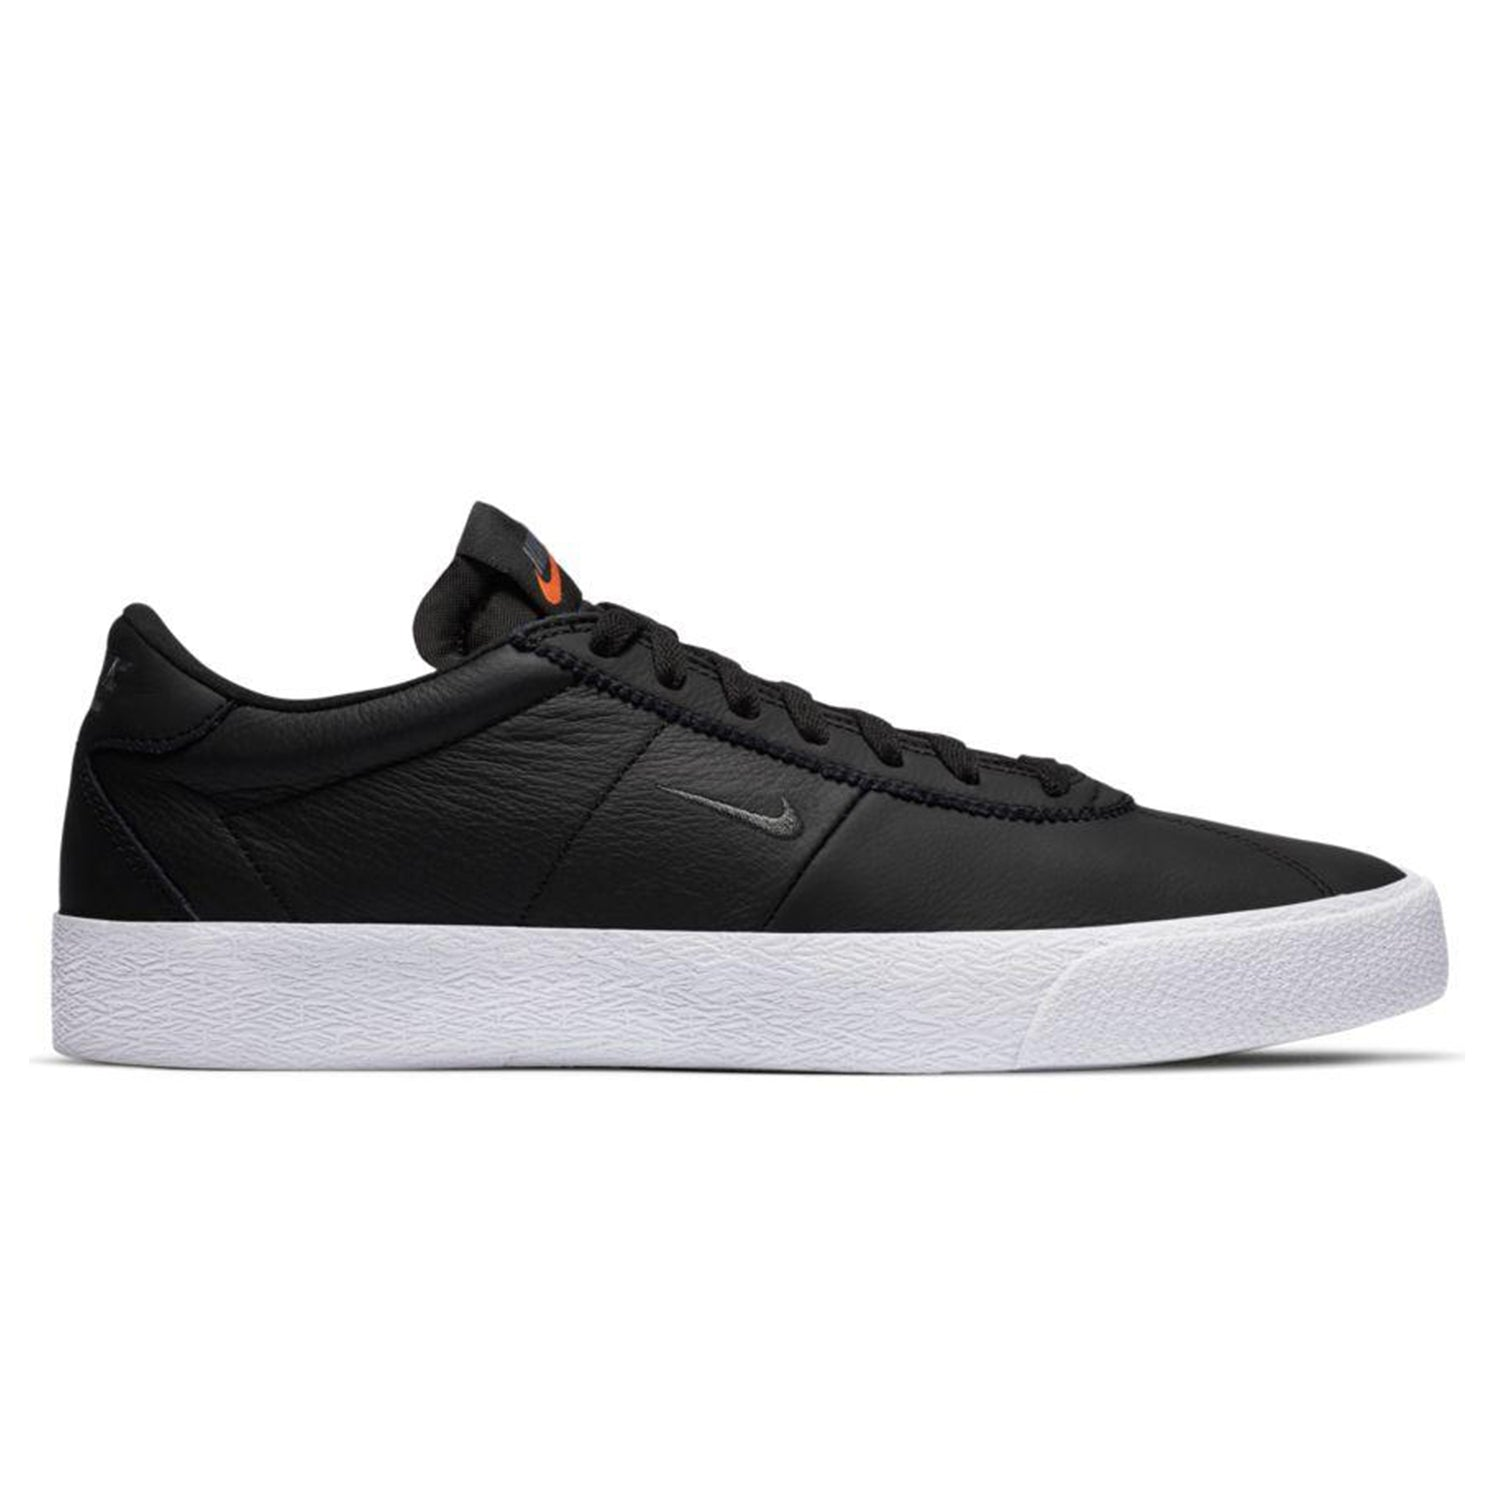 Nike SB Zoom Bruin ISO Black/Dark Grey